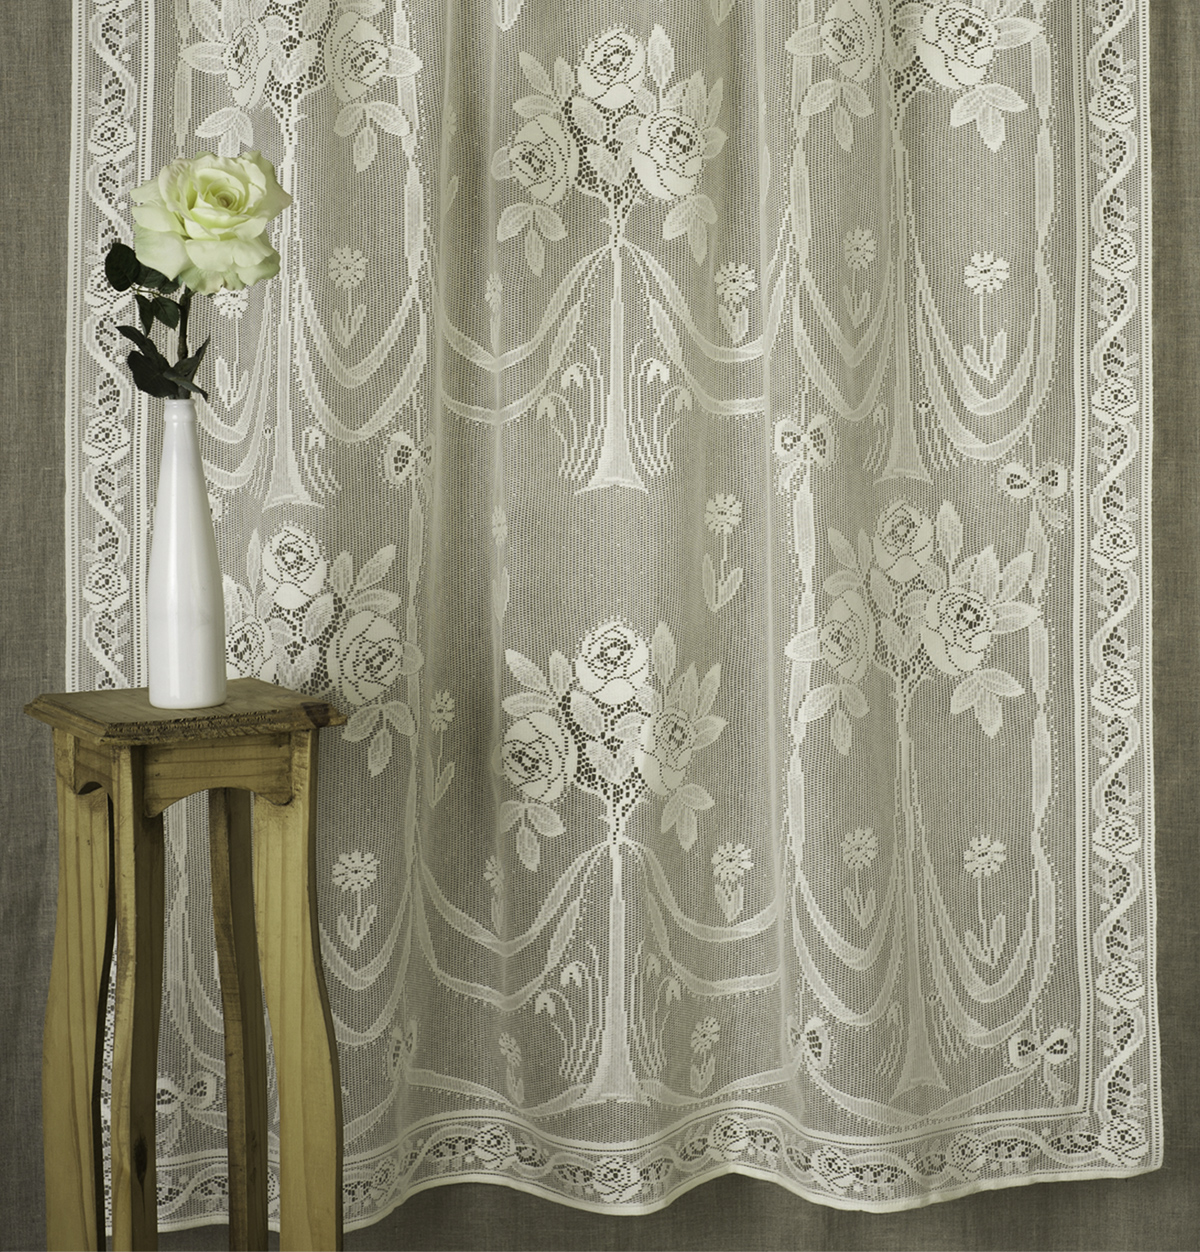 Best Sheer Fabric For Curtains Arbor Rose Nottingham Lace Curtain Direct From London Lace